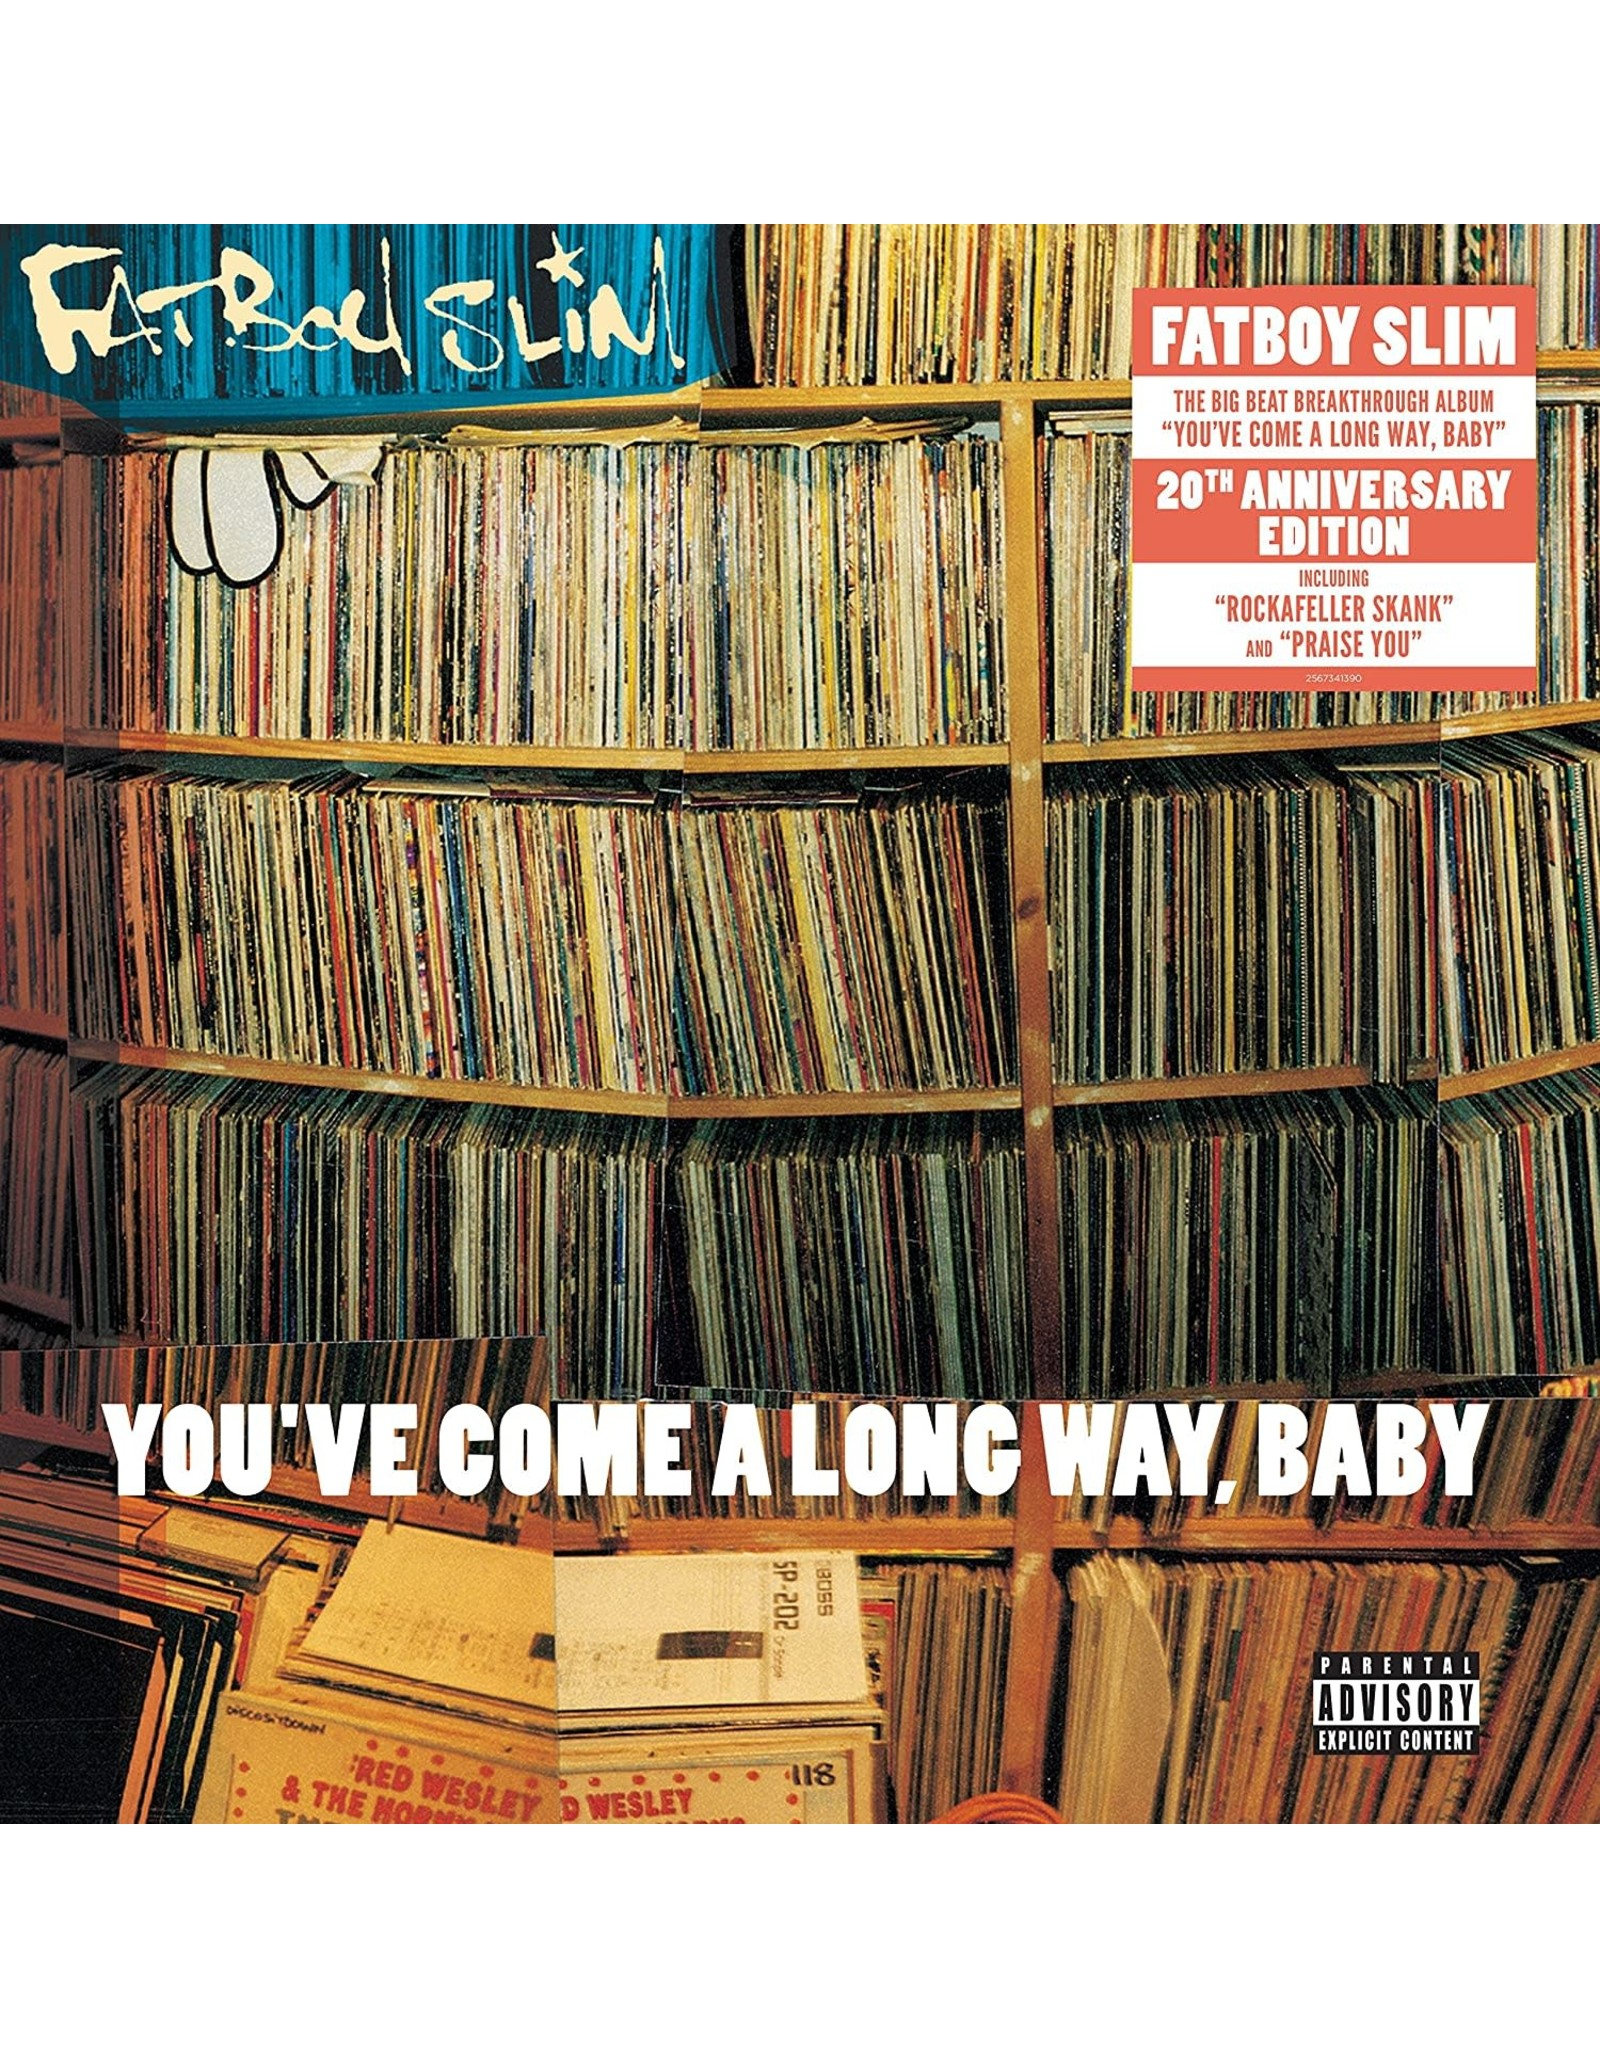 Fatboy Slim - You've Come Along Way, Baby (20th Anniversary)